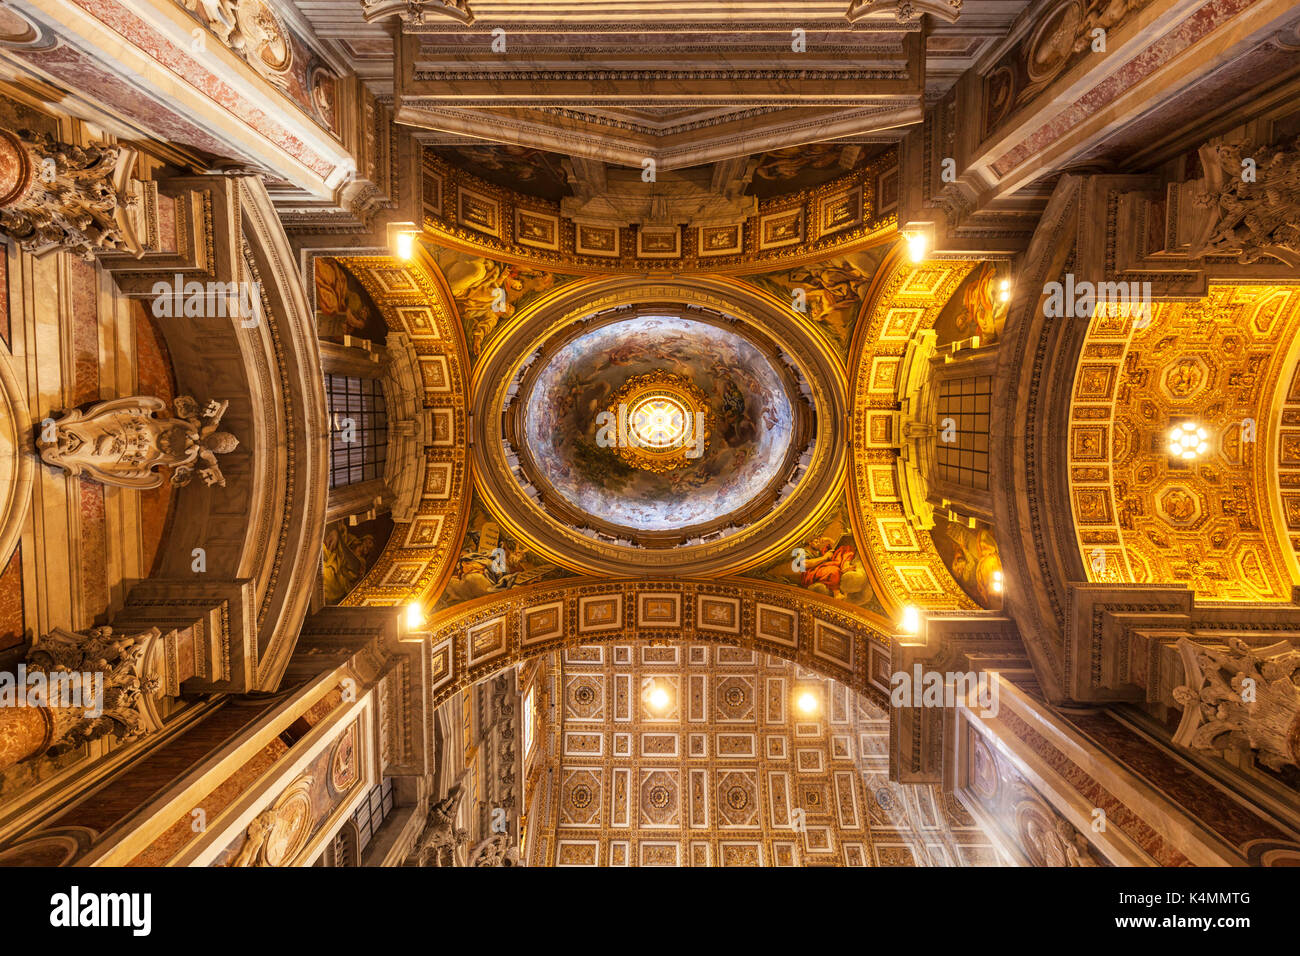 Interior of St. Peters Basilica roof dome Vatican City, UNESCO World Heritage Site, Rome, Lazio, Italy, Europe - Stock Image